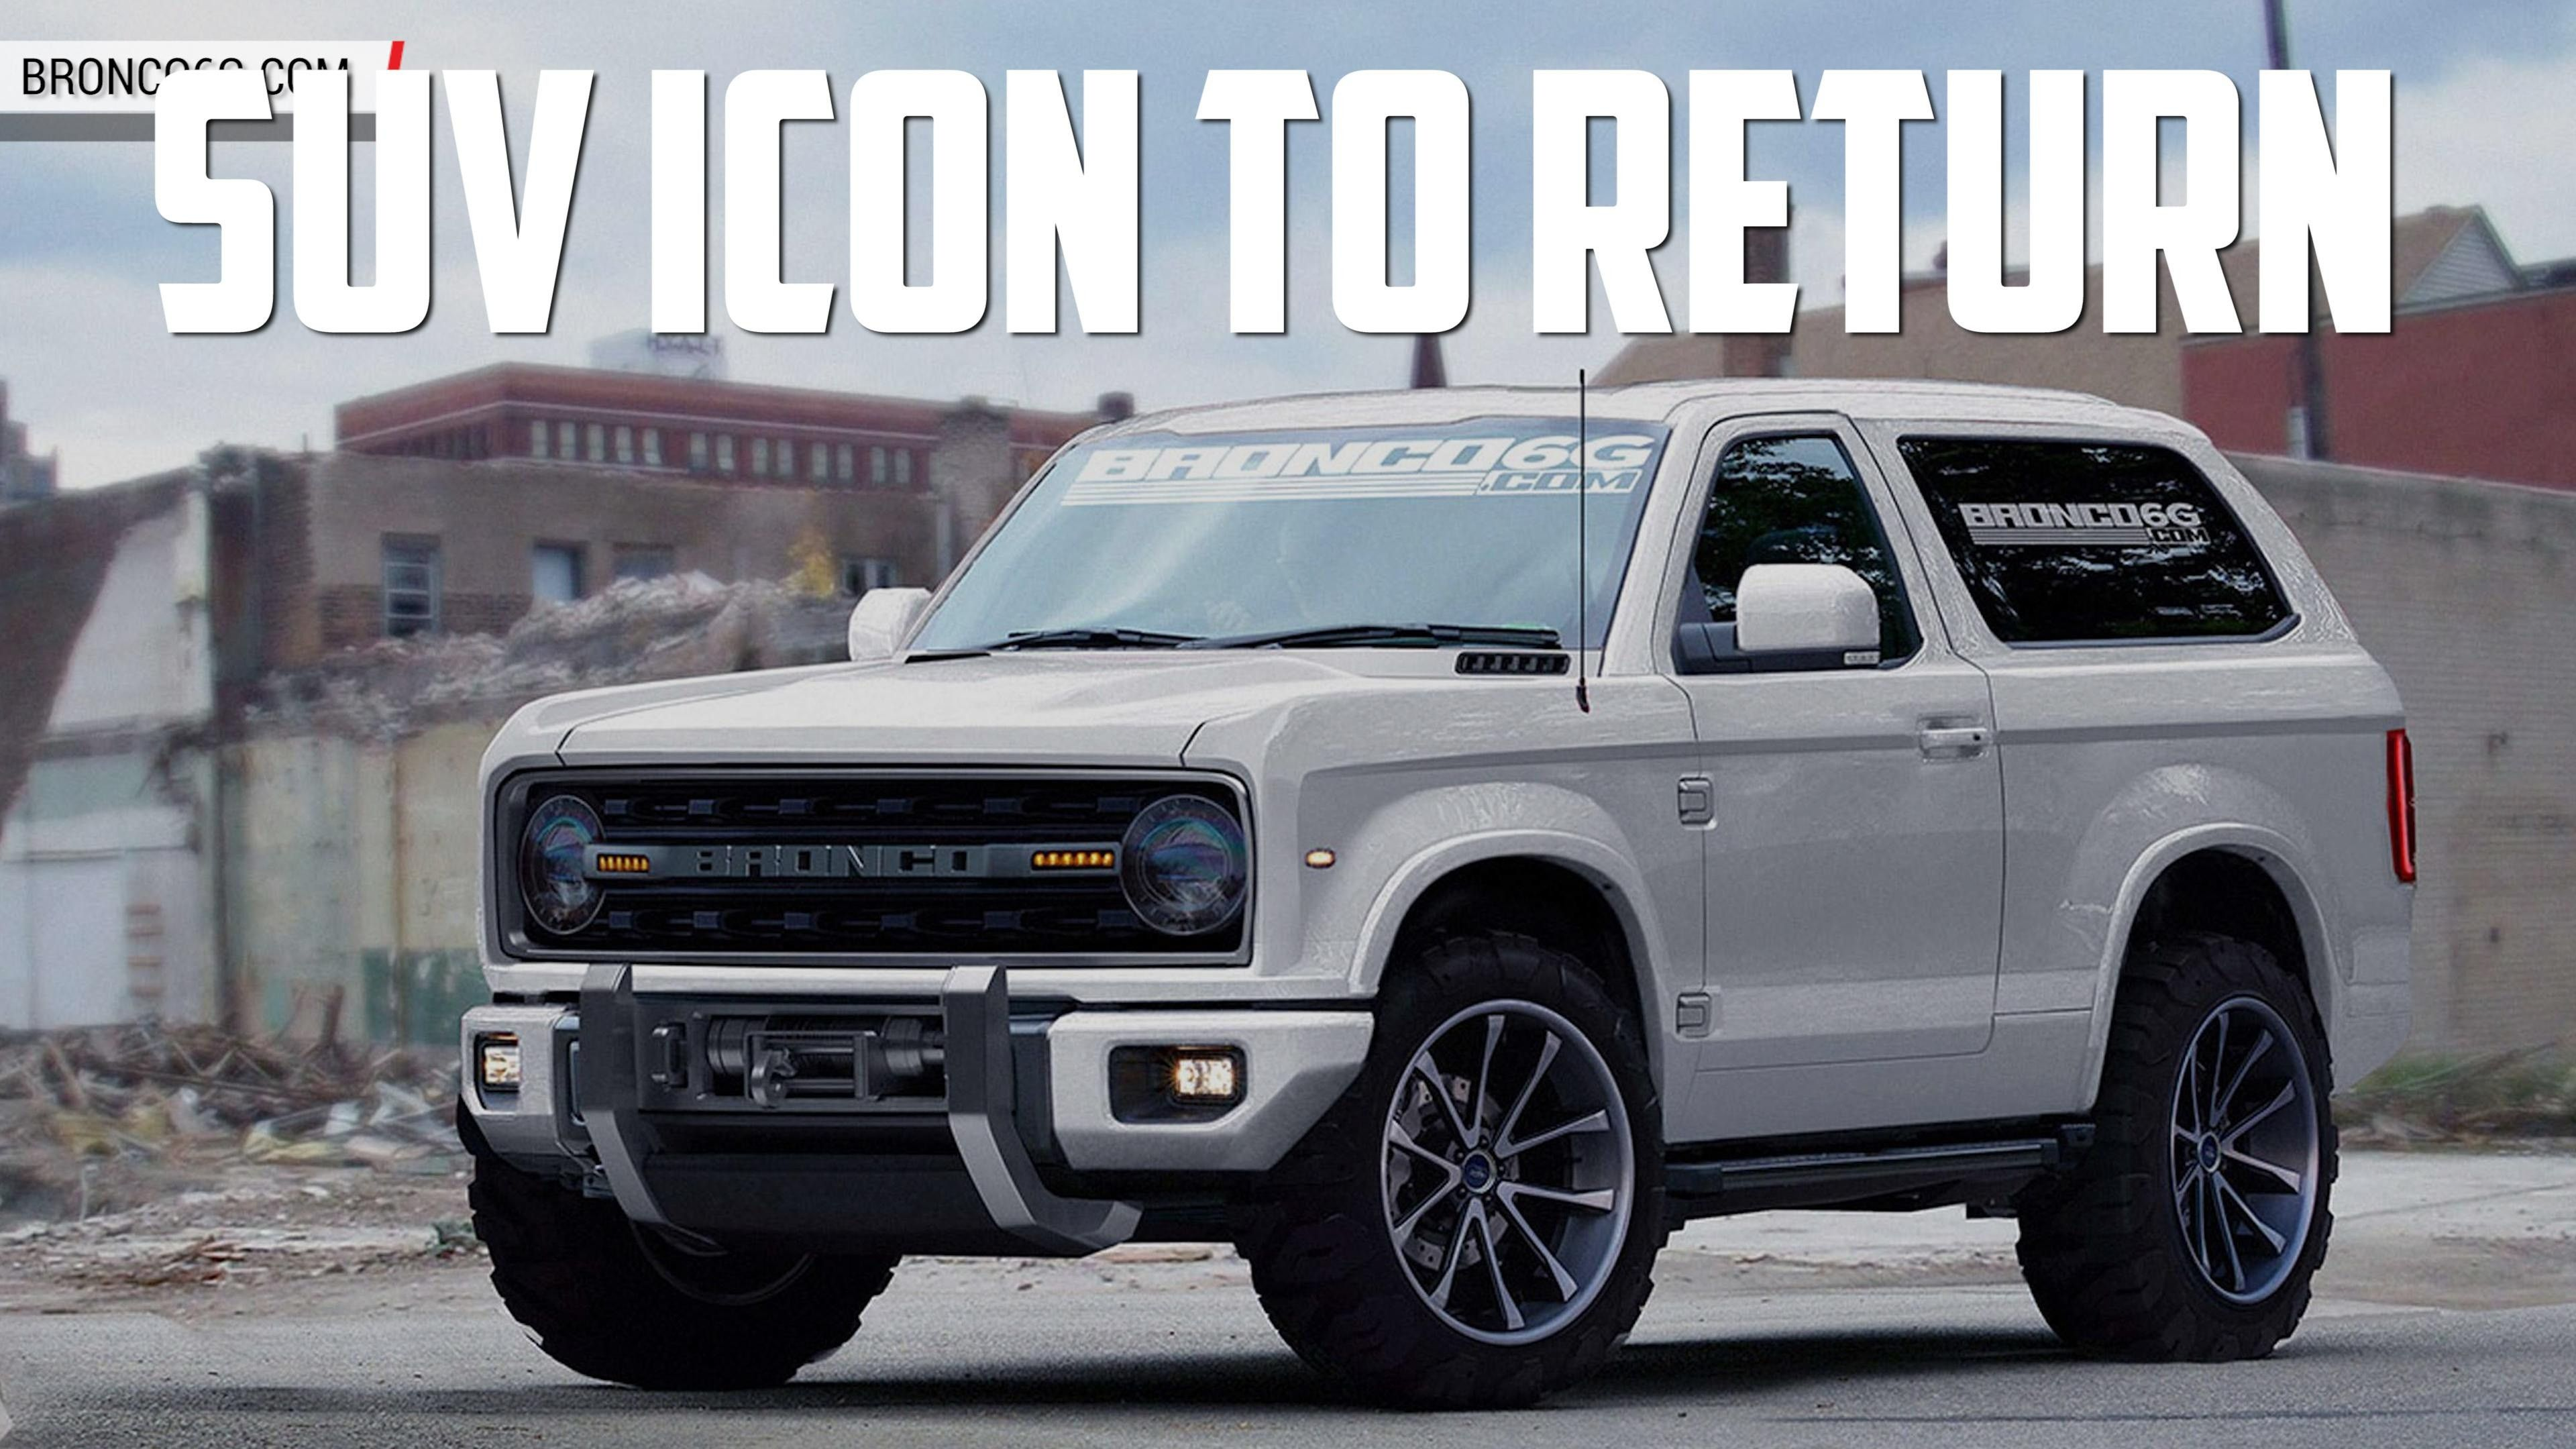 New Ford Bronco Spy Photos Check More At Http Www Autocarsreview